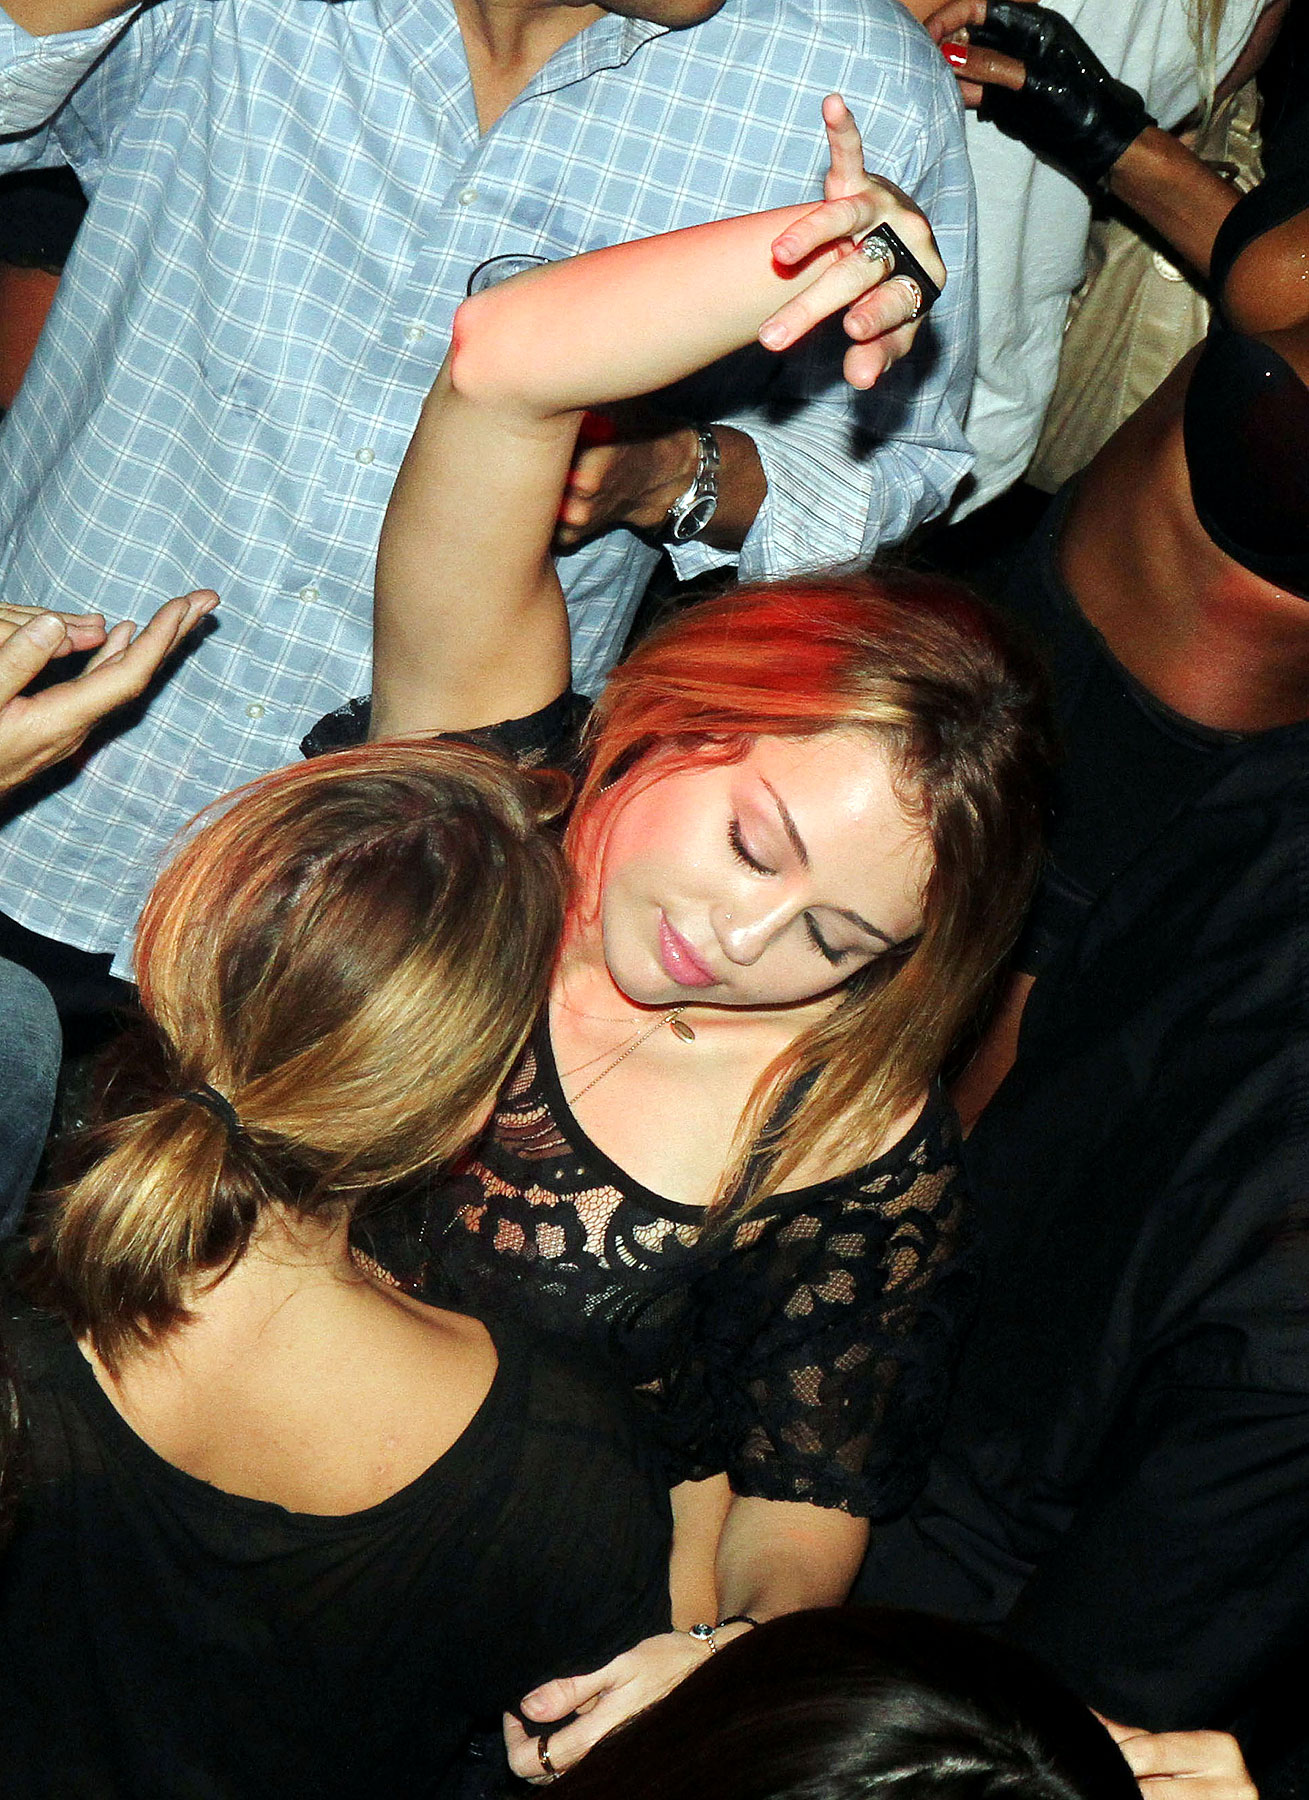 Miley Cyrus Busts a Move in Paris Nightclub (PHOTOS)